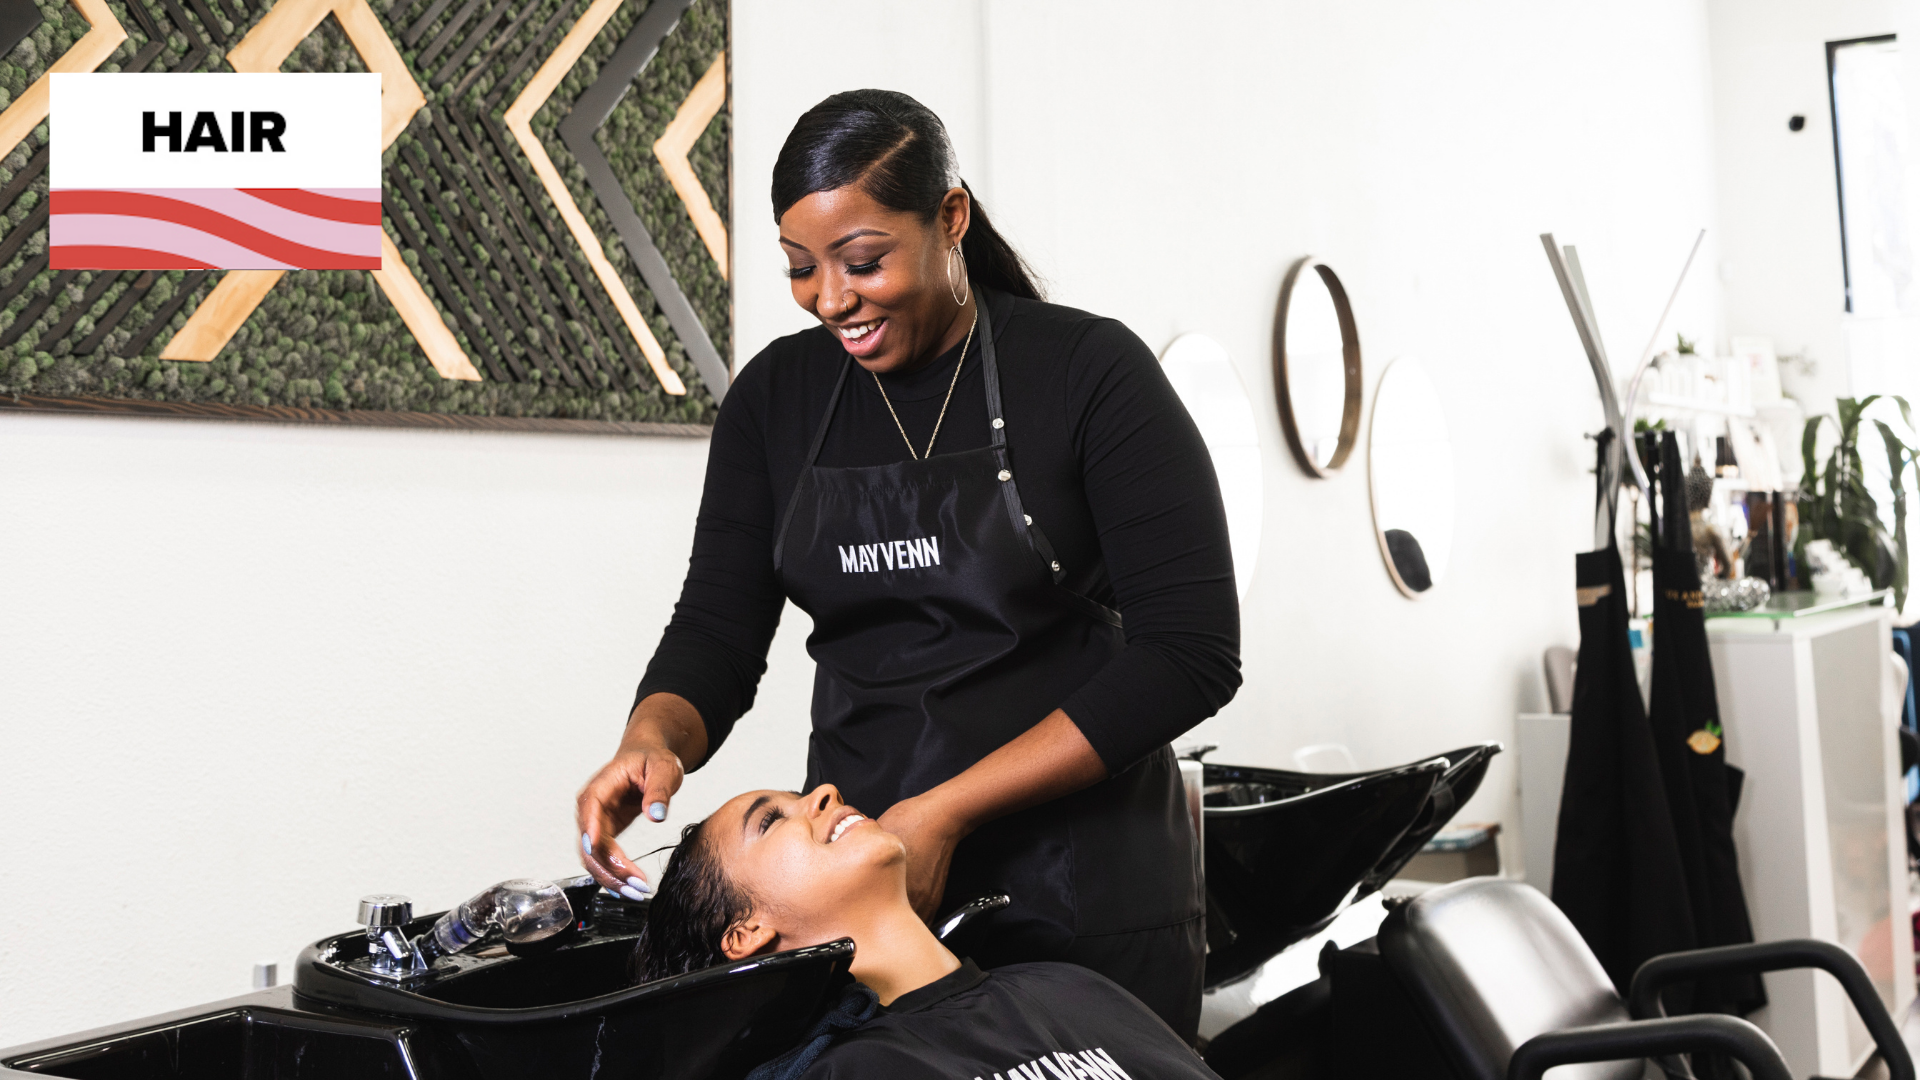 Showing Stylists Love: Tips on Tipping